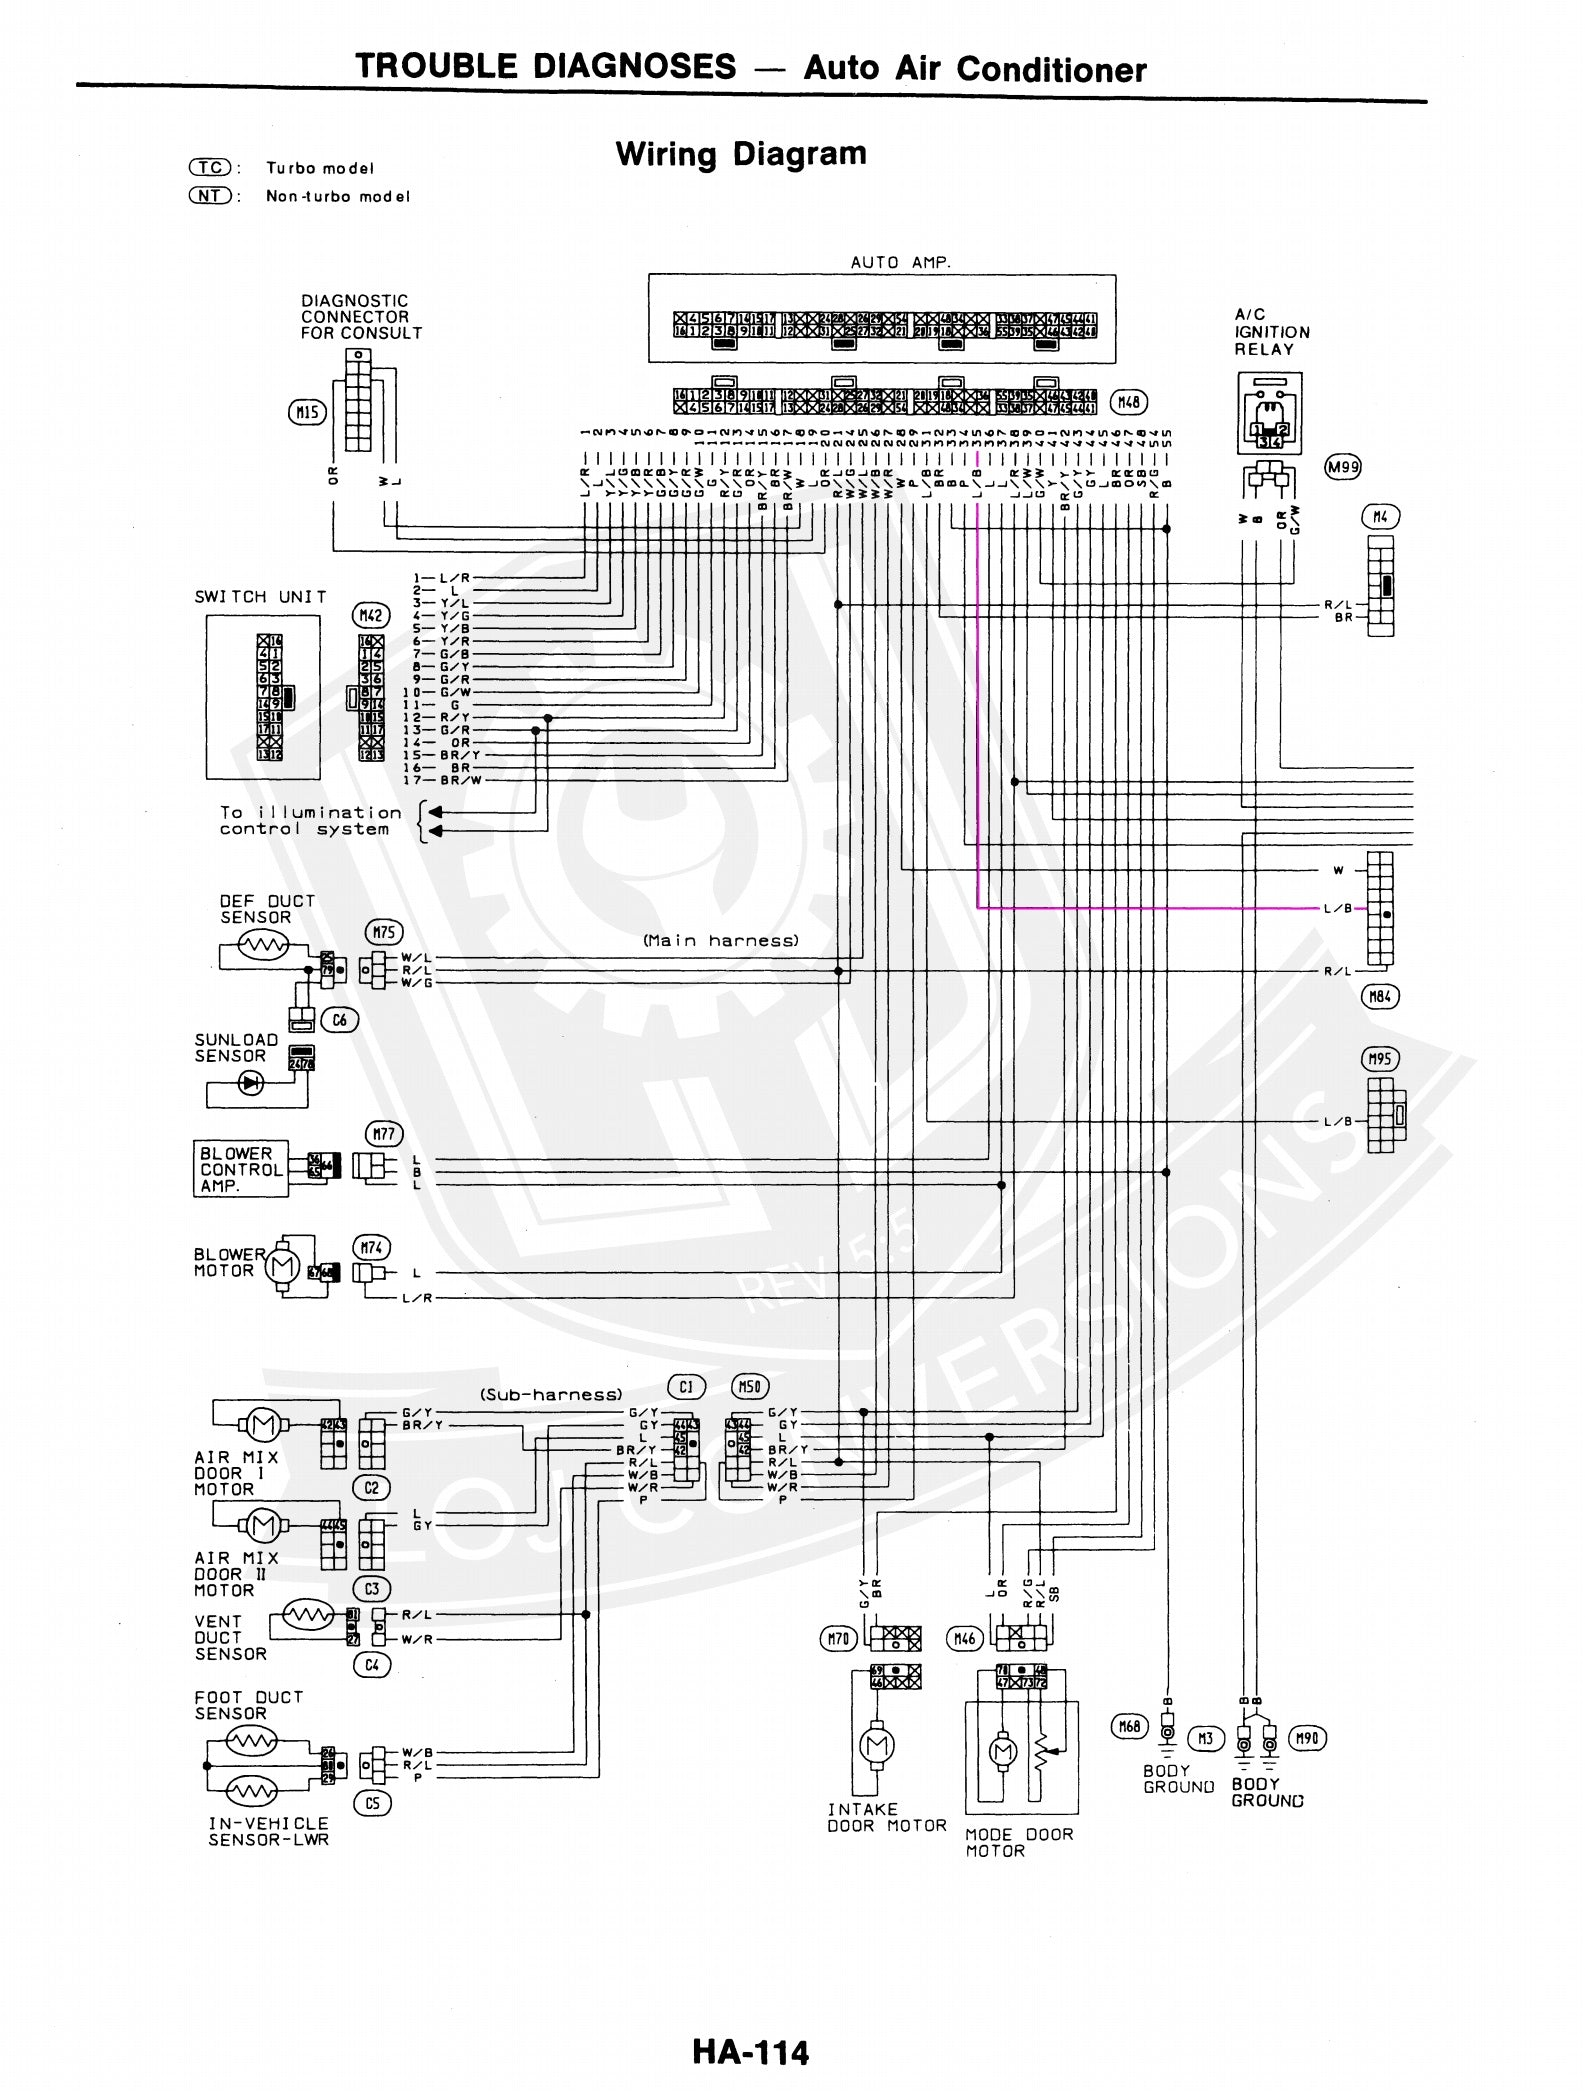 Z32 ignition wiring diagram wiring diagrams schematics wiring the ac in a 300zx engine conversion loj conversions 1991300zxacwiring 1994300zxacwiring z32 ignition wiring diagram swarovskicordoba Images